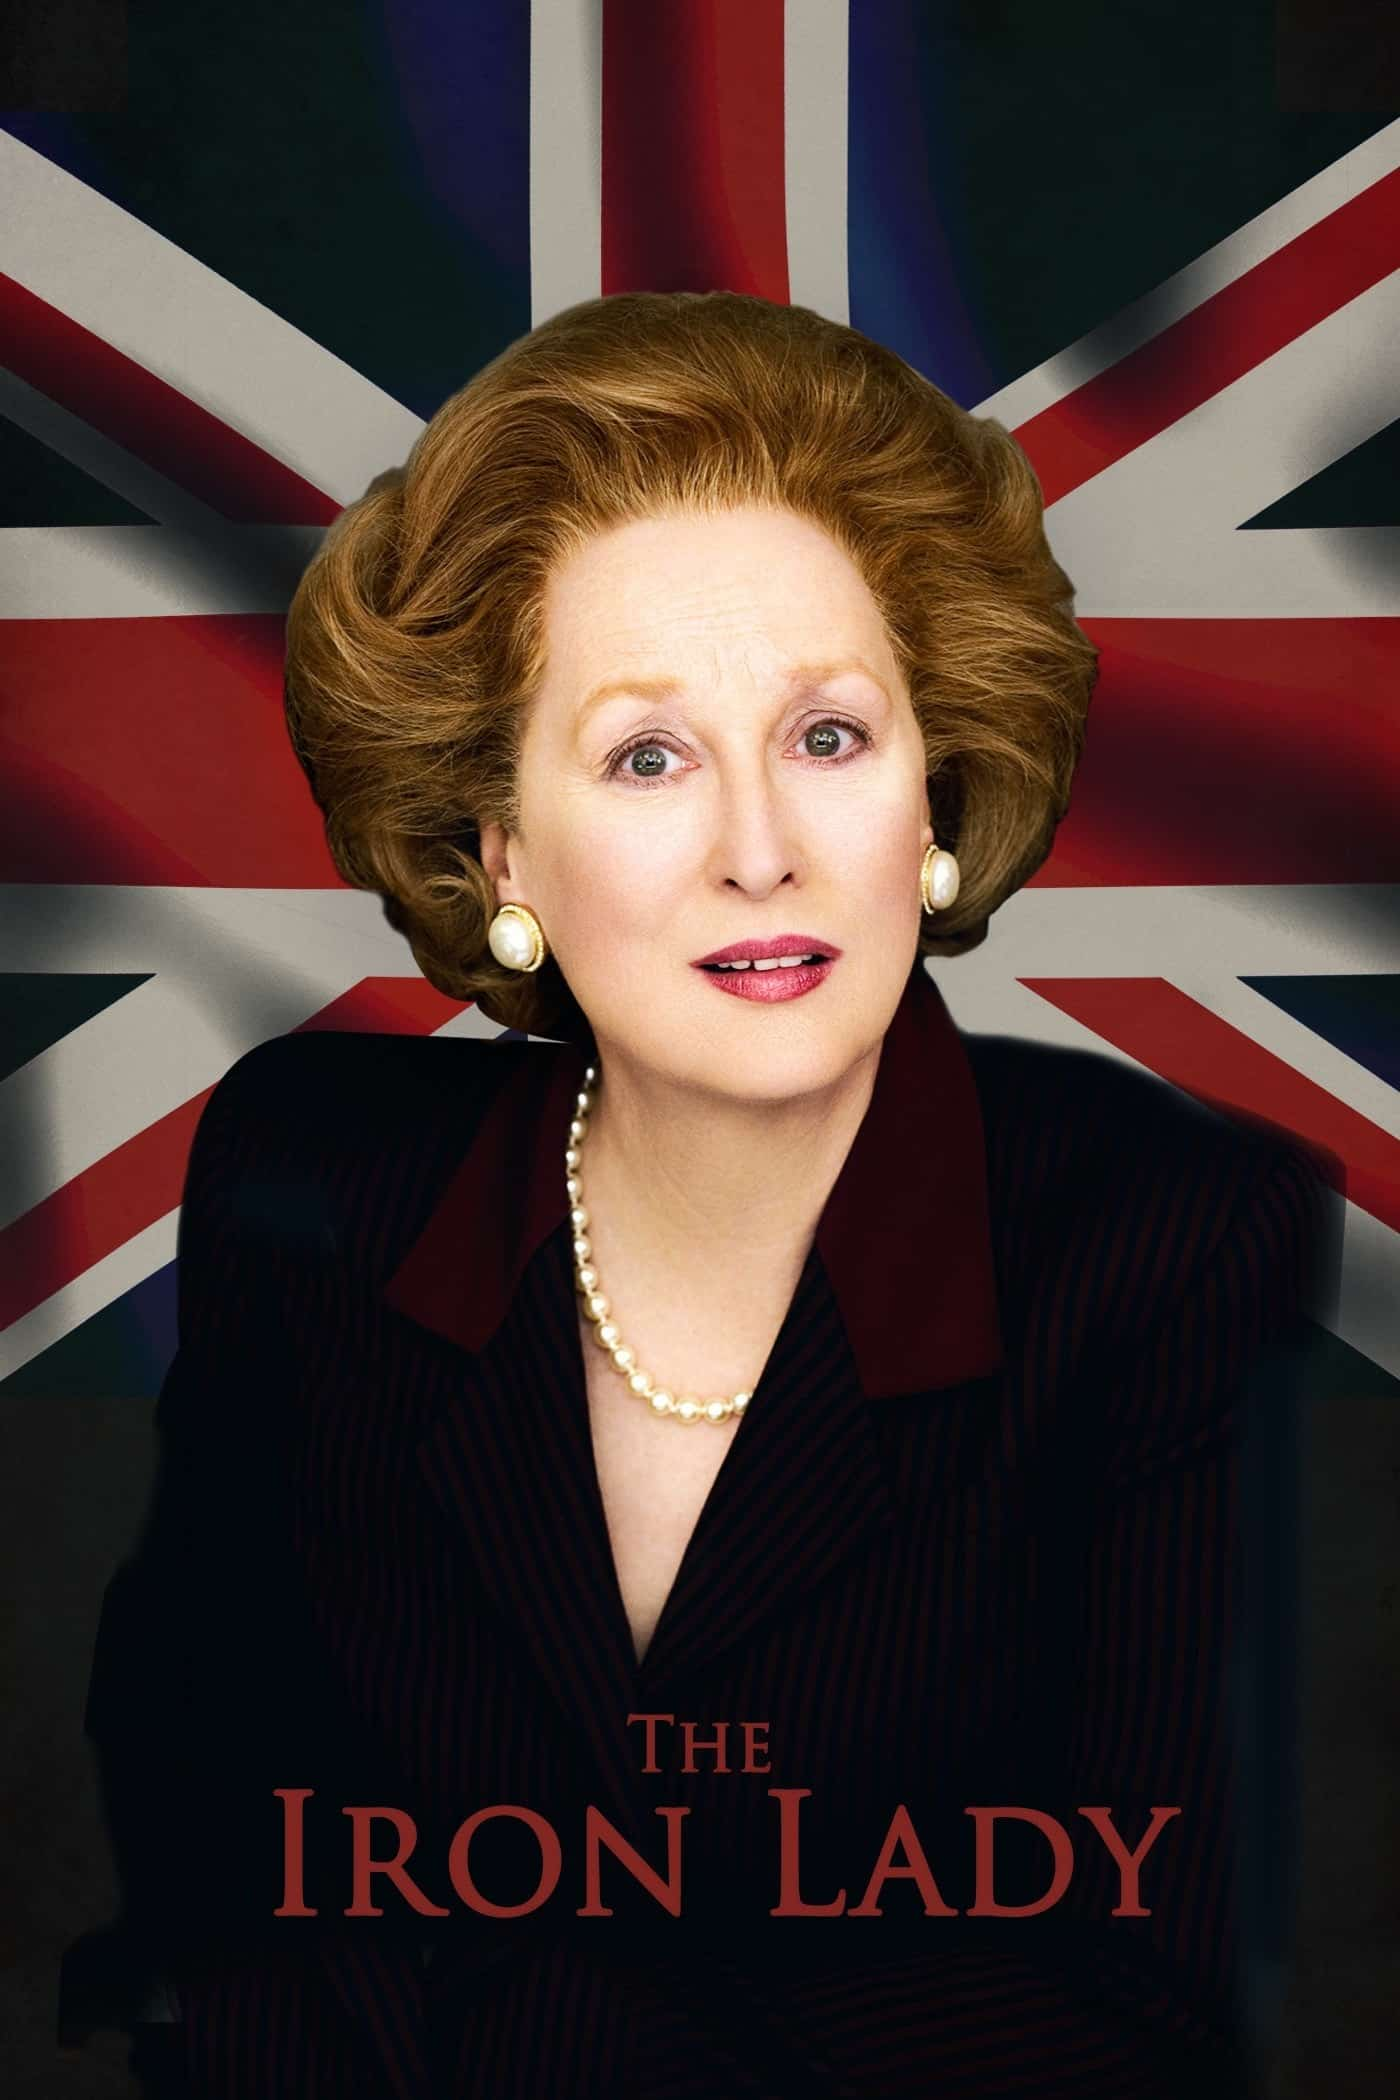 The Iron Lady, 2011